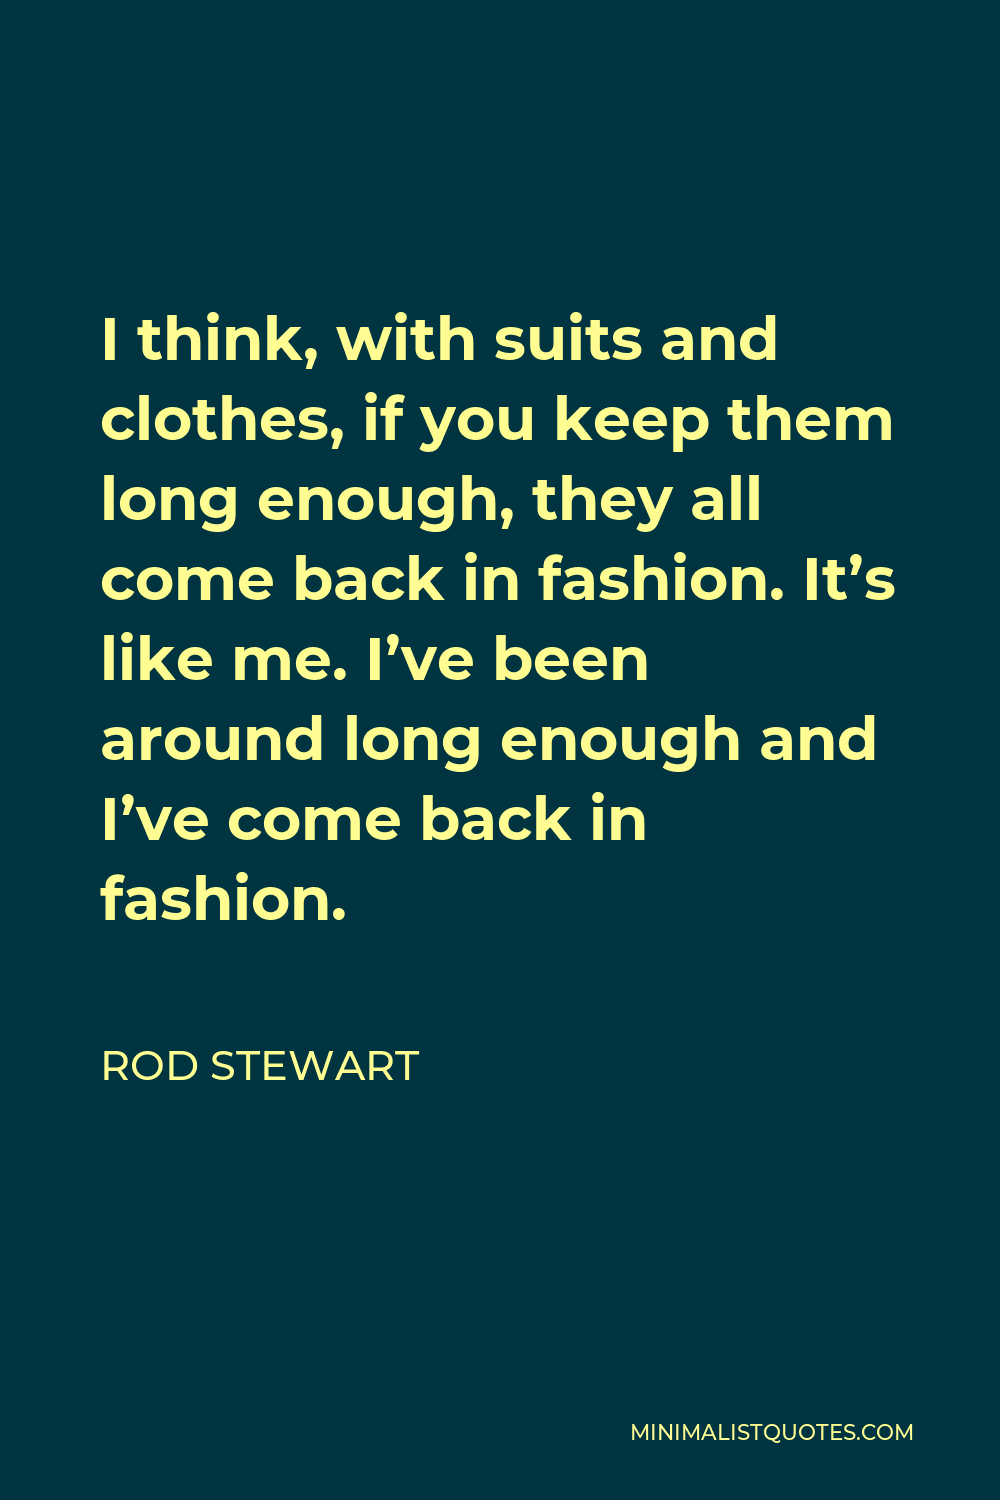 Rod Stewart Quote - I think, with suits and clothes, if you keep them long enough, they all come back in fashion. It's like me. I've been around long enough and I've come back in fashion.